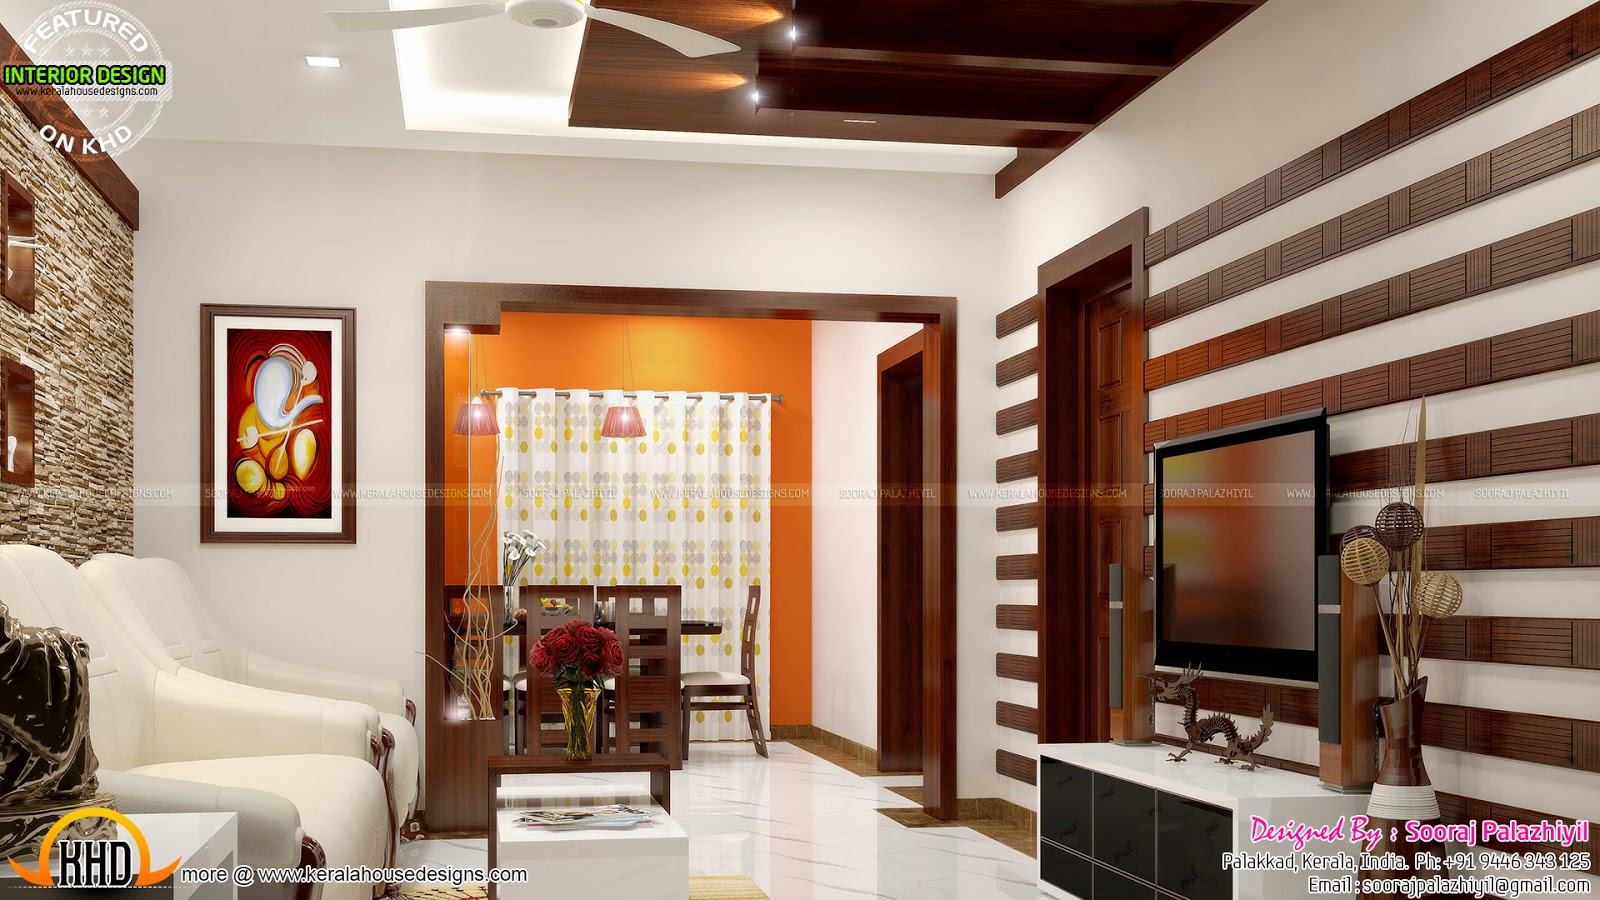 Simple apartment interior in kerala kerala home design for Interior design styles living room 2015